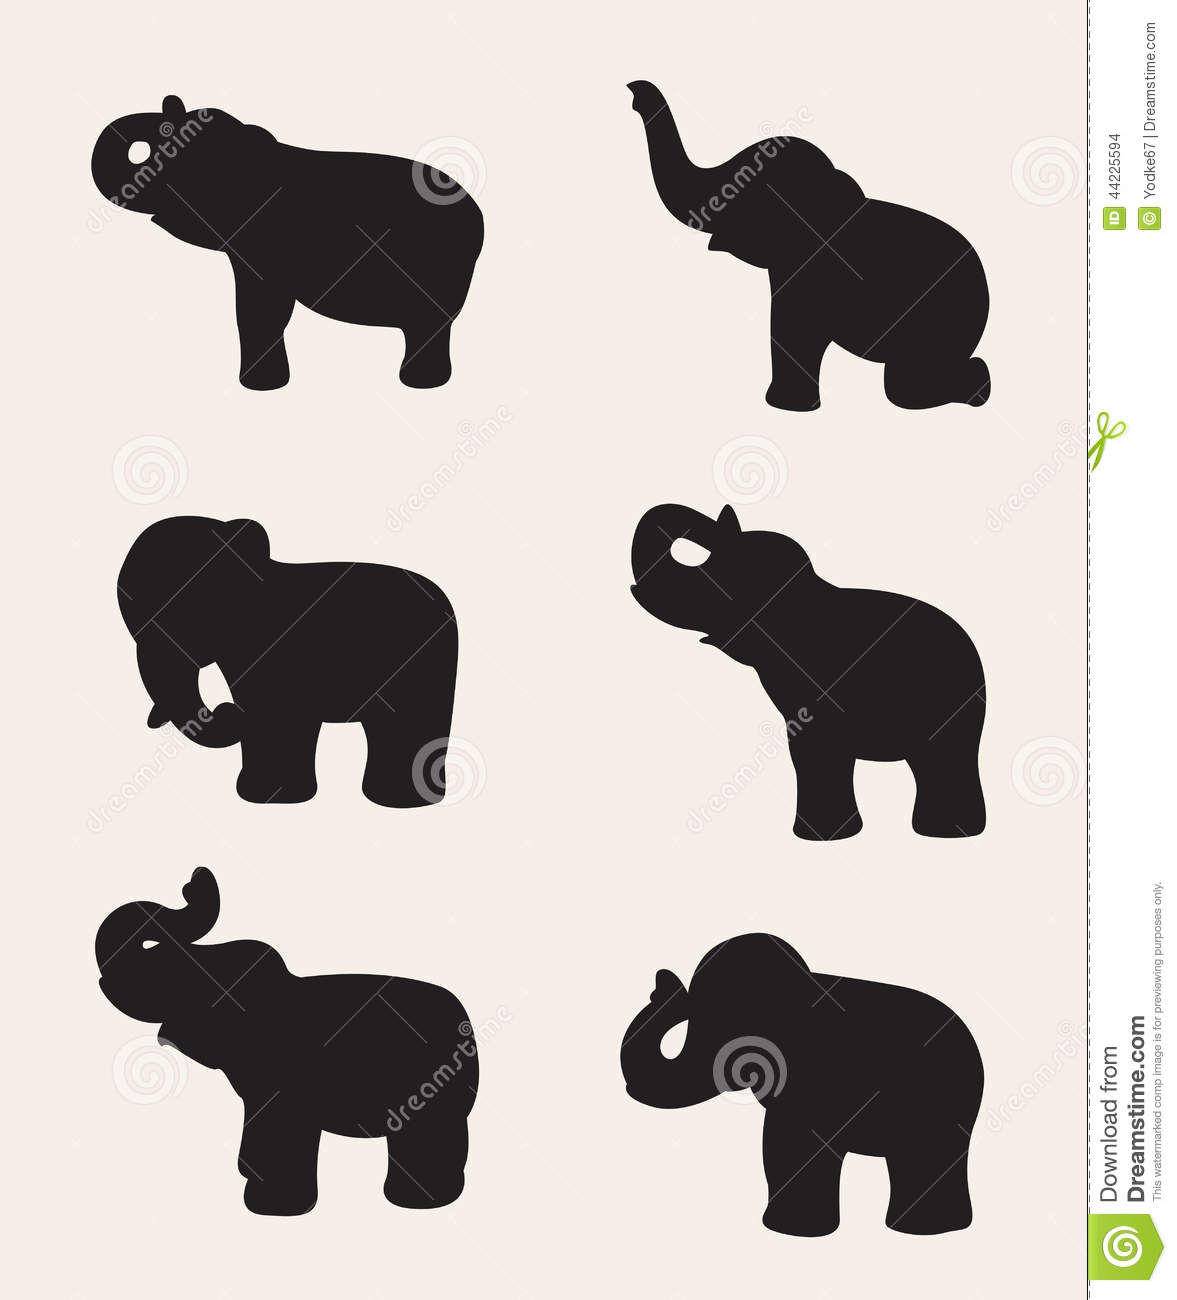 Vector Image Of An Elephant Silhouette Stock Vector - Image: 44225594